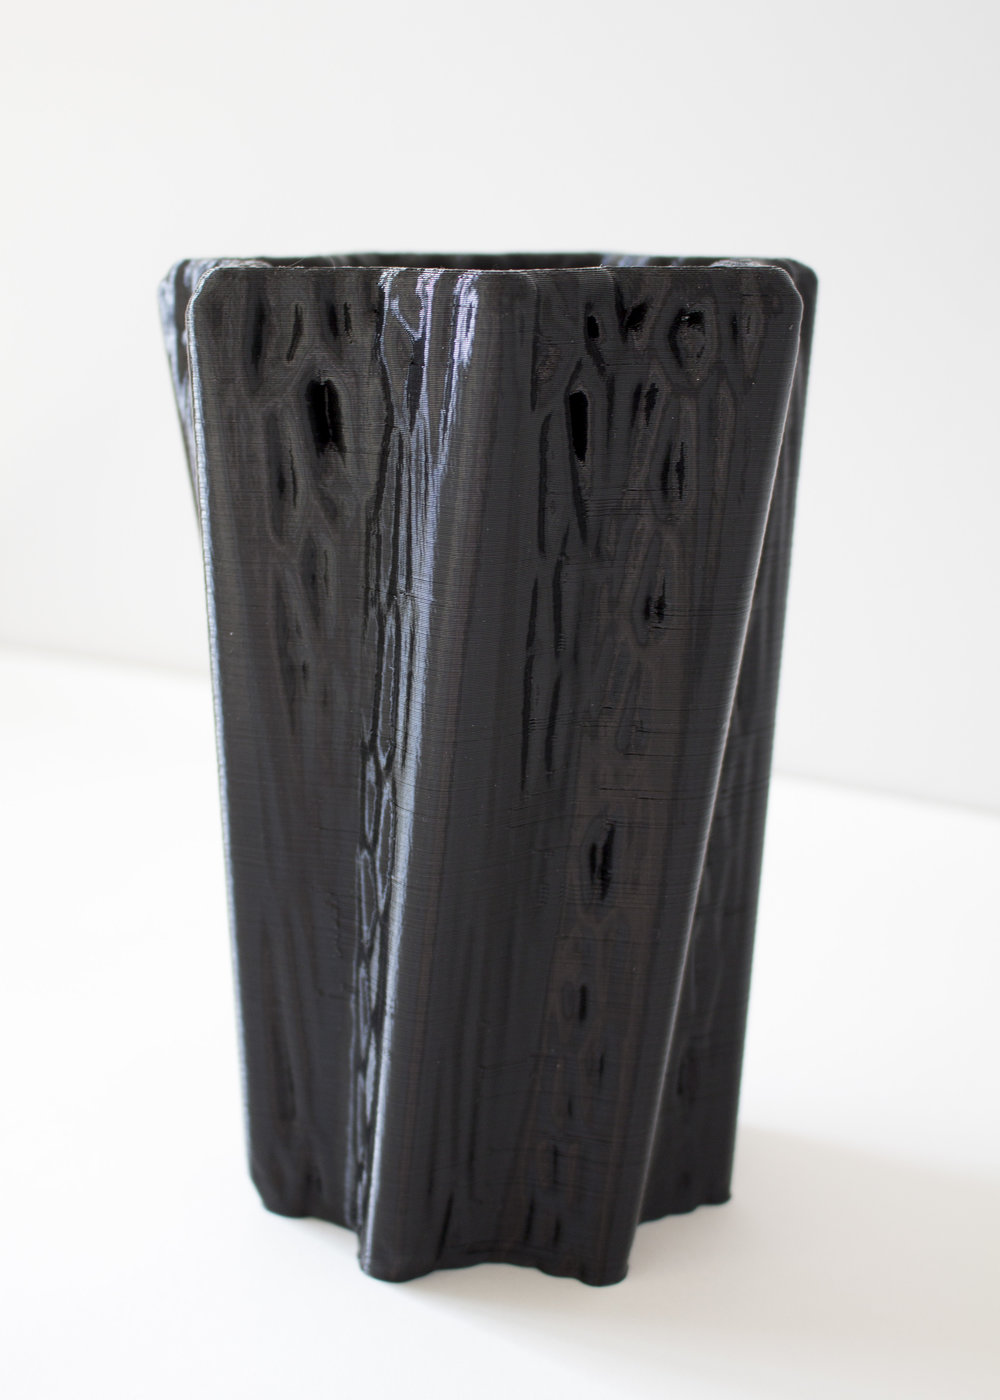 The web pattern on the vase was created using the Voronoi diagram to fracture the flat surface into an organic flowing surface.